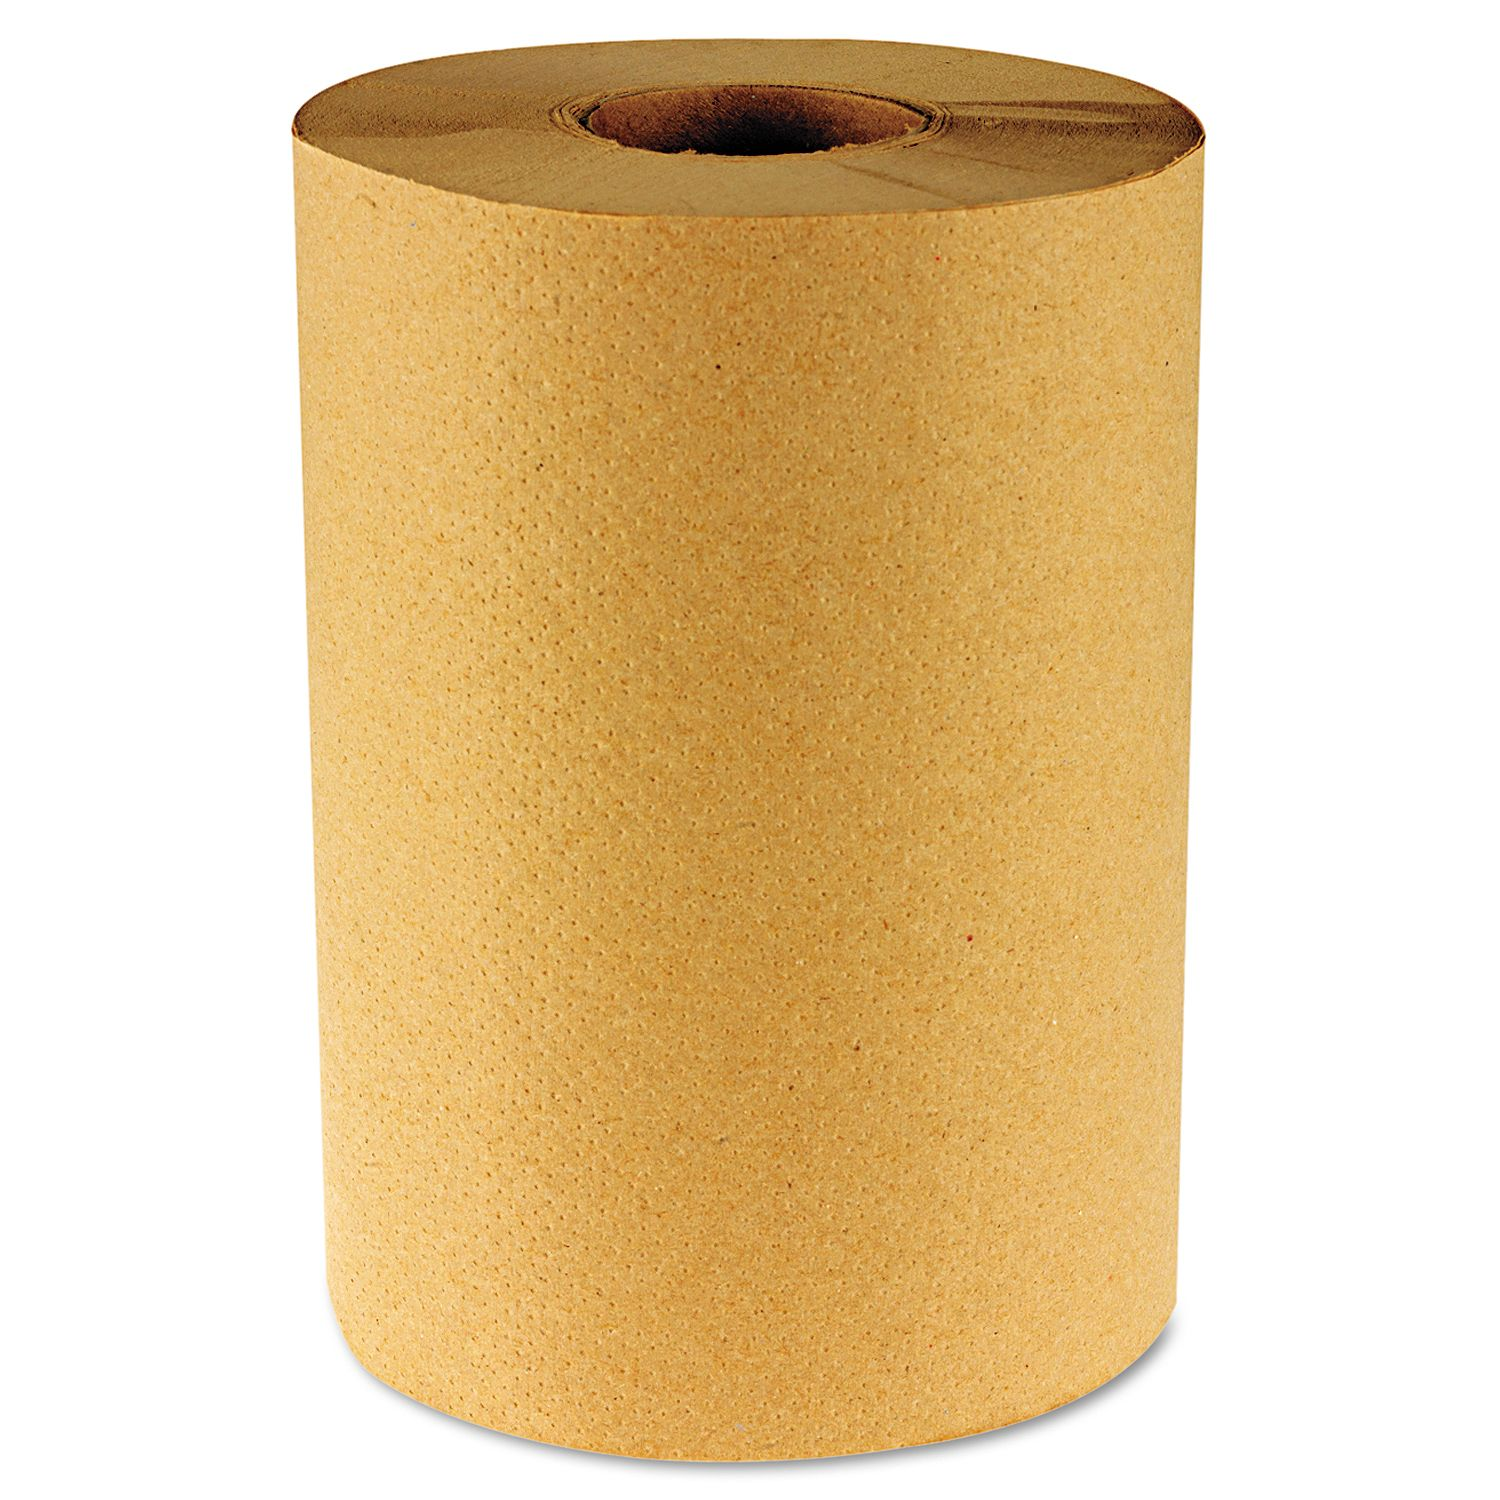 Product of Boardwalk Economy Hardwound Brown Paper Towels, 1-Ply (800', 6 Rolls) - [Bulk Savings]